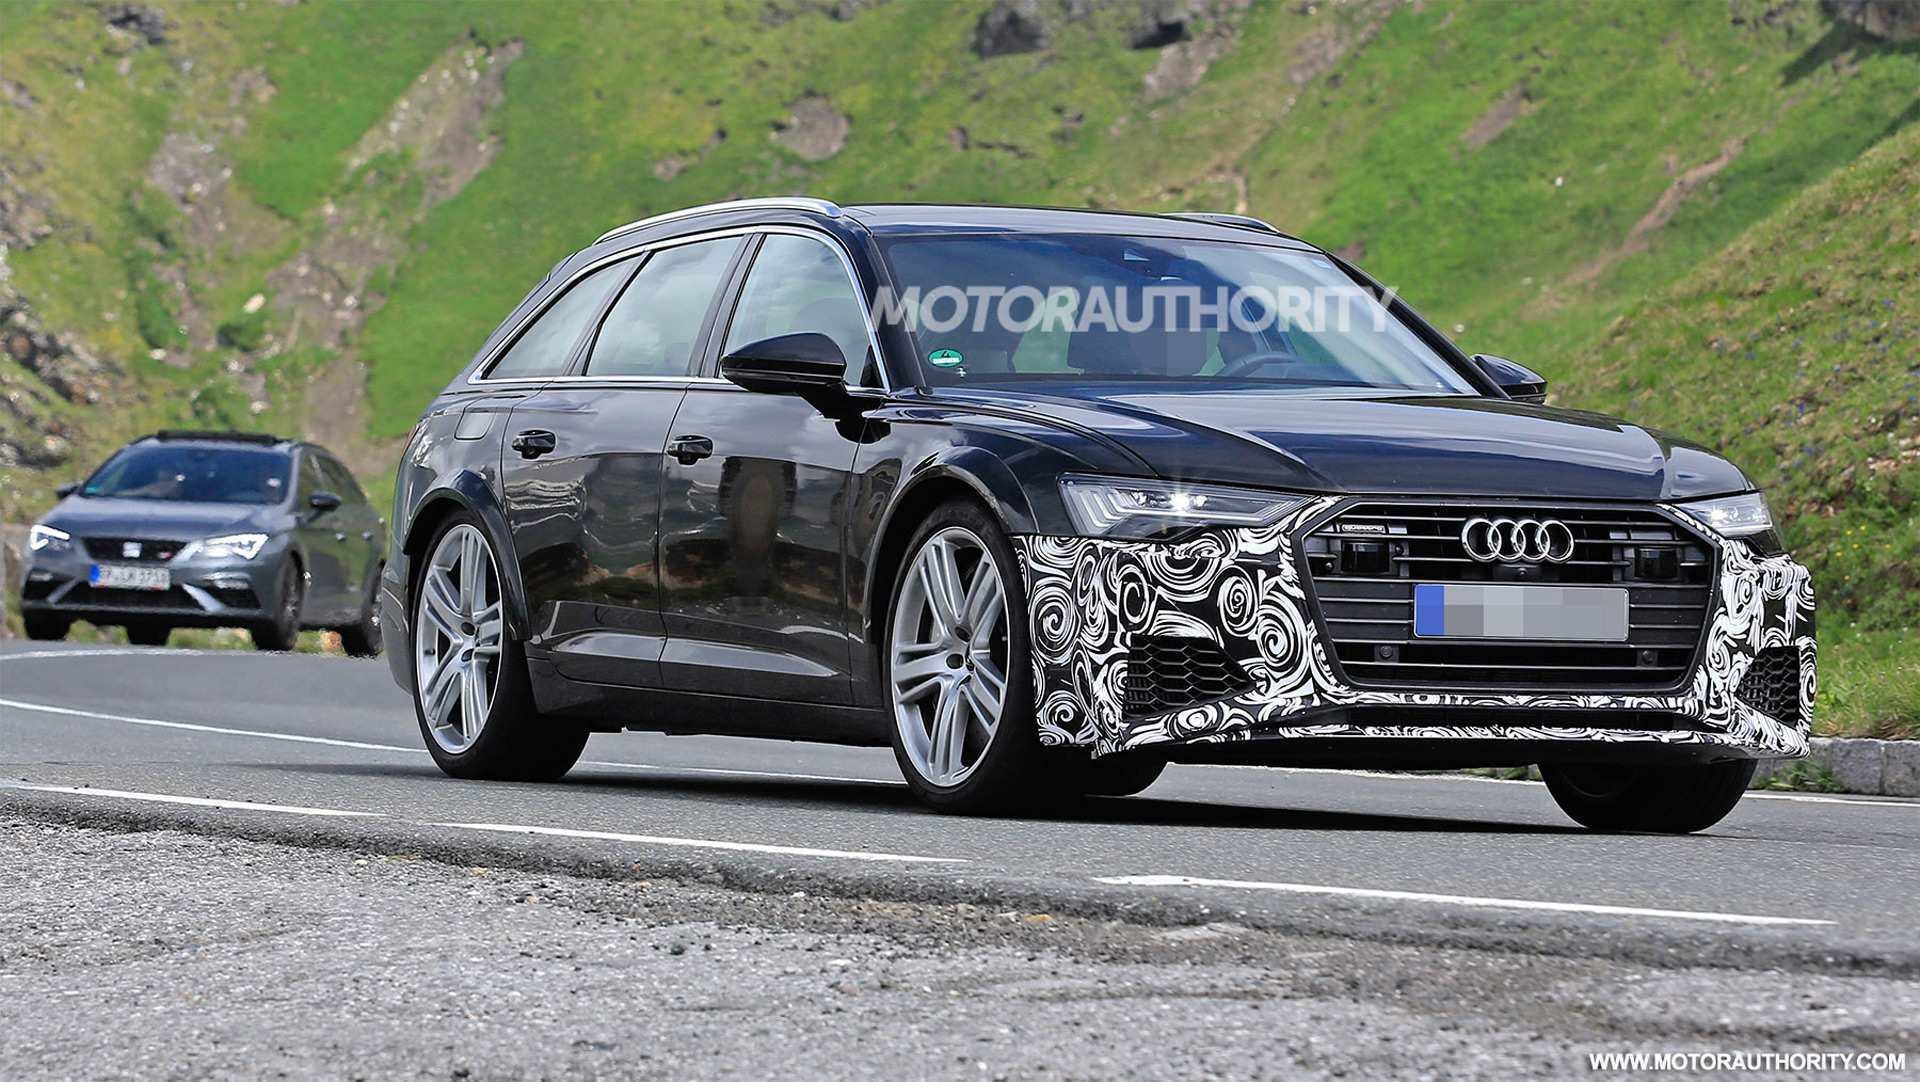 47 New 2019 Audi Rs6 Exterior and Interior by 2019 Audi Rs6